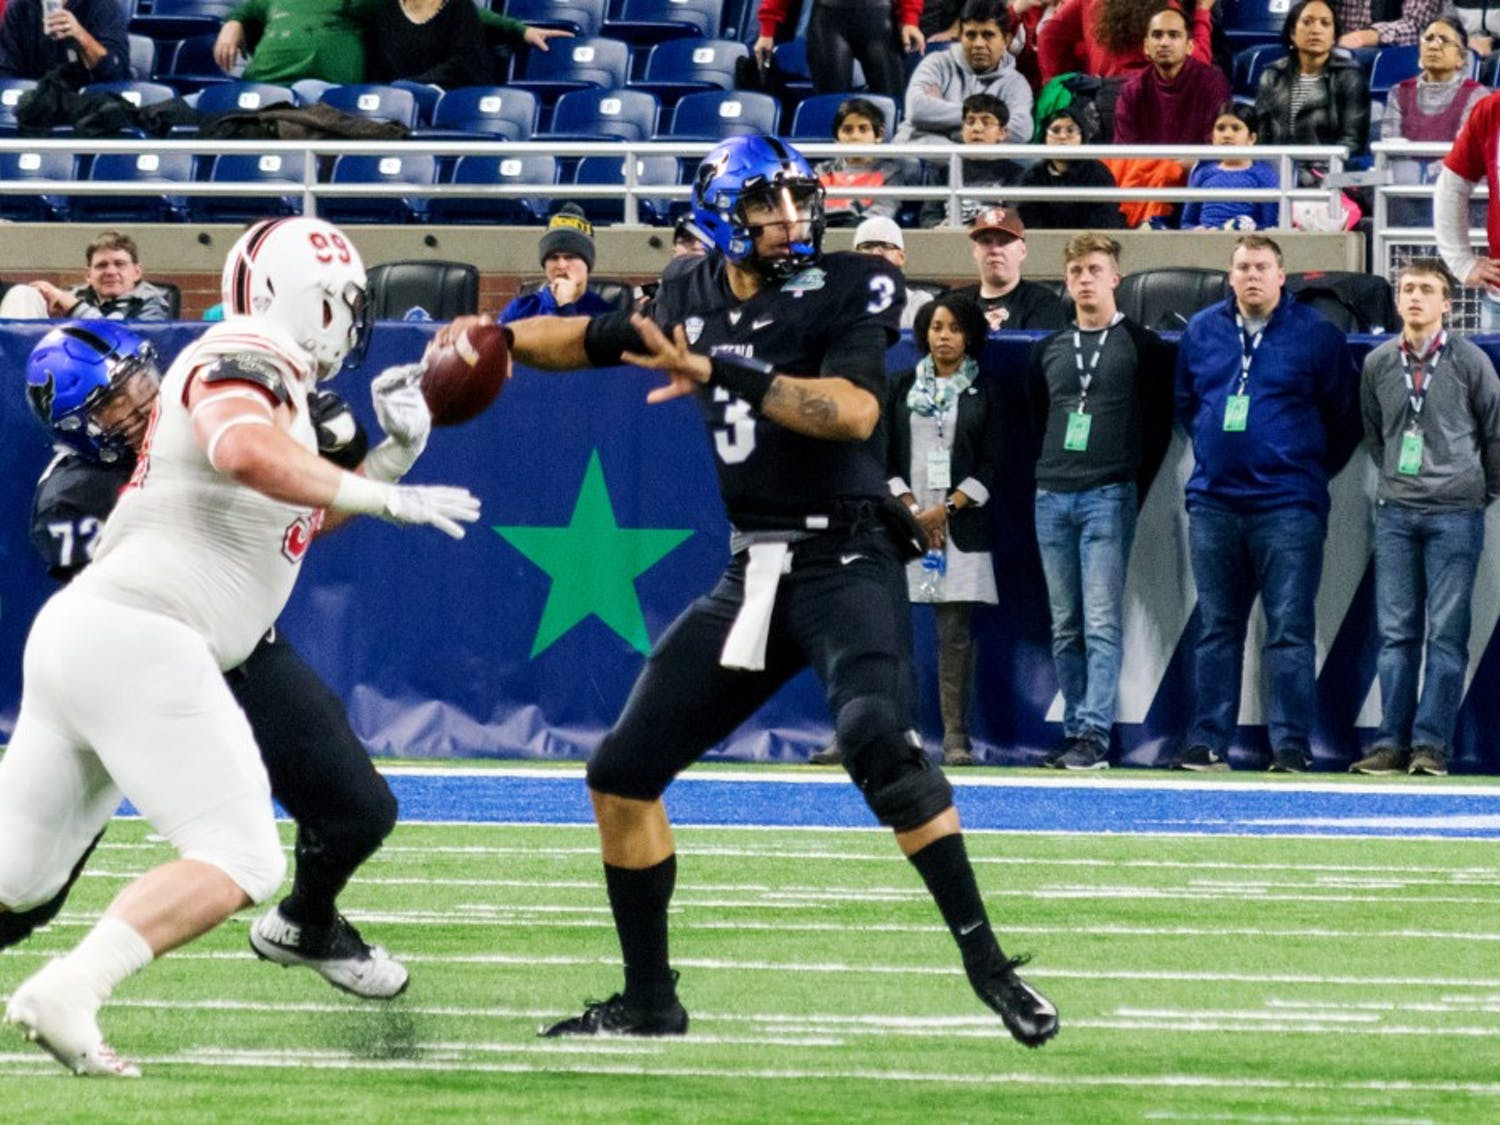 Tyree Jackson sets for a throw during the MAC Championship game. Jackson blew scouts away with his physical attributes during the NFL Combine this weekend.